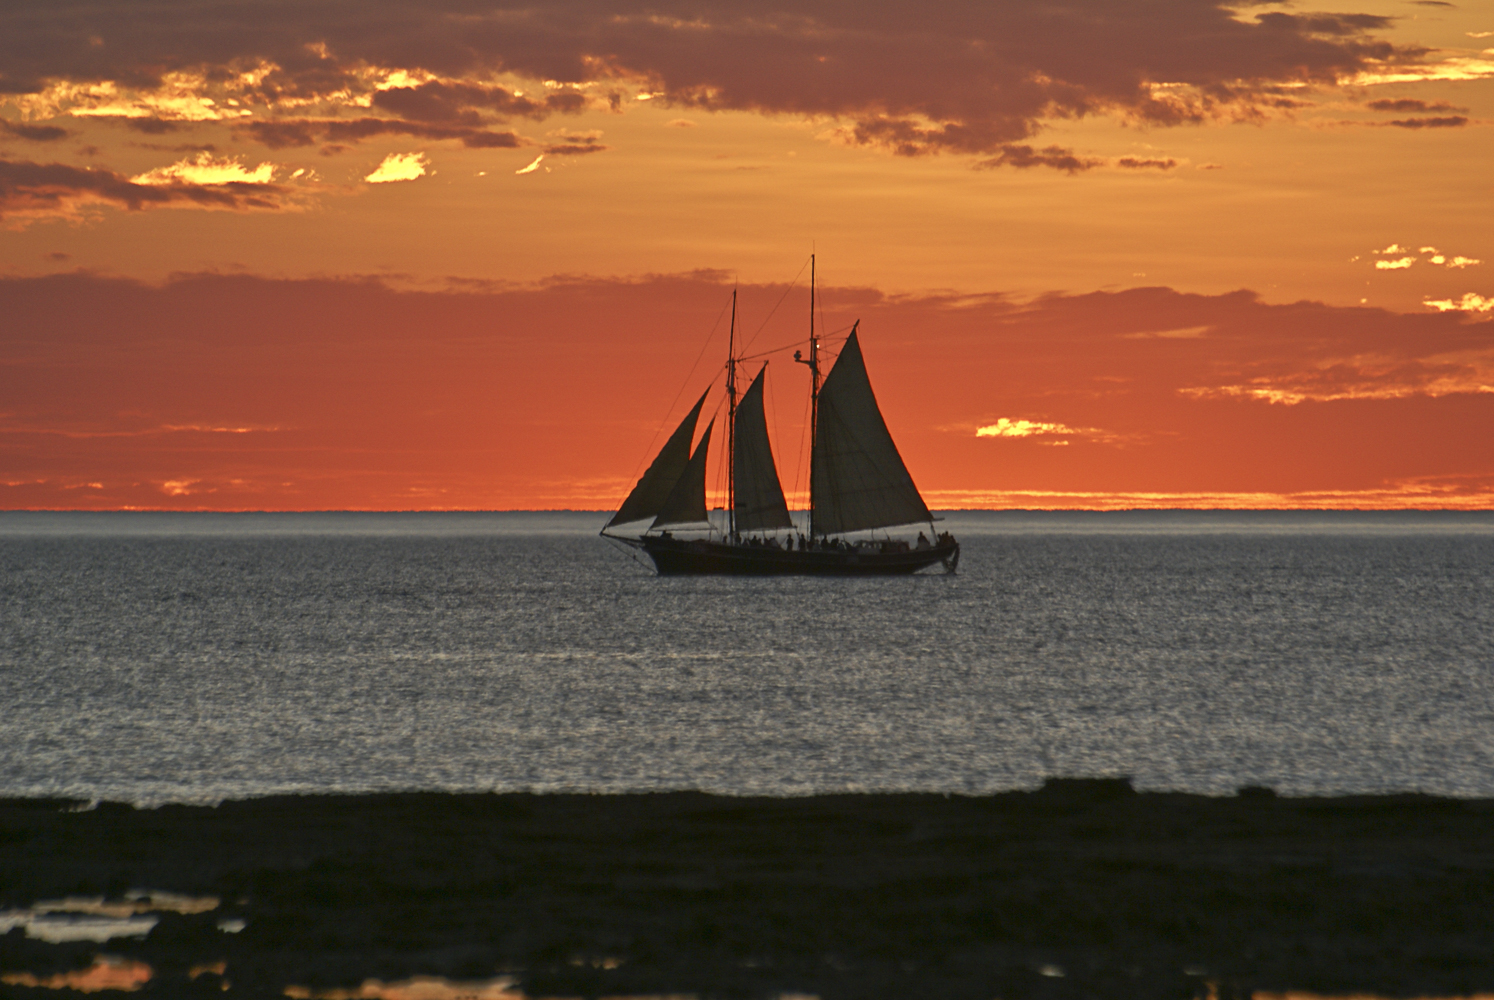 sailing at sunset author yin tom from cable beac